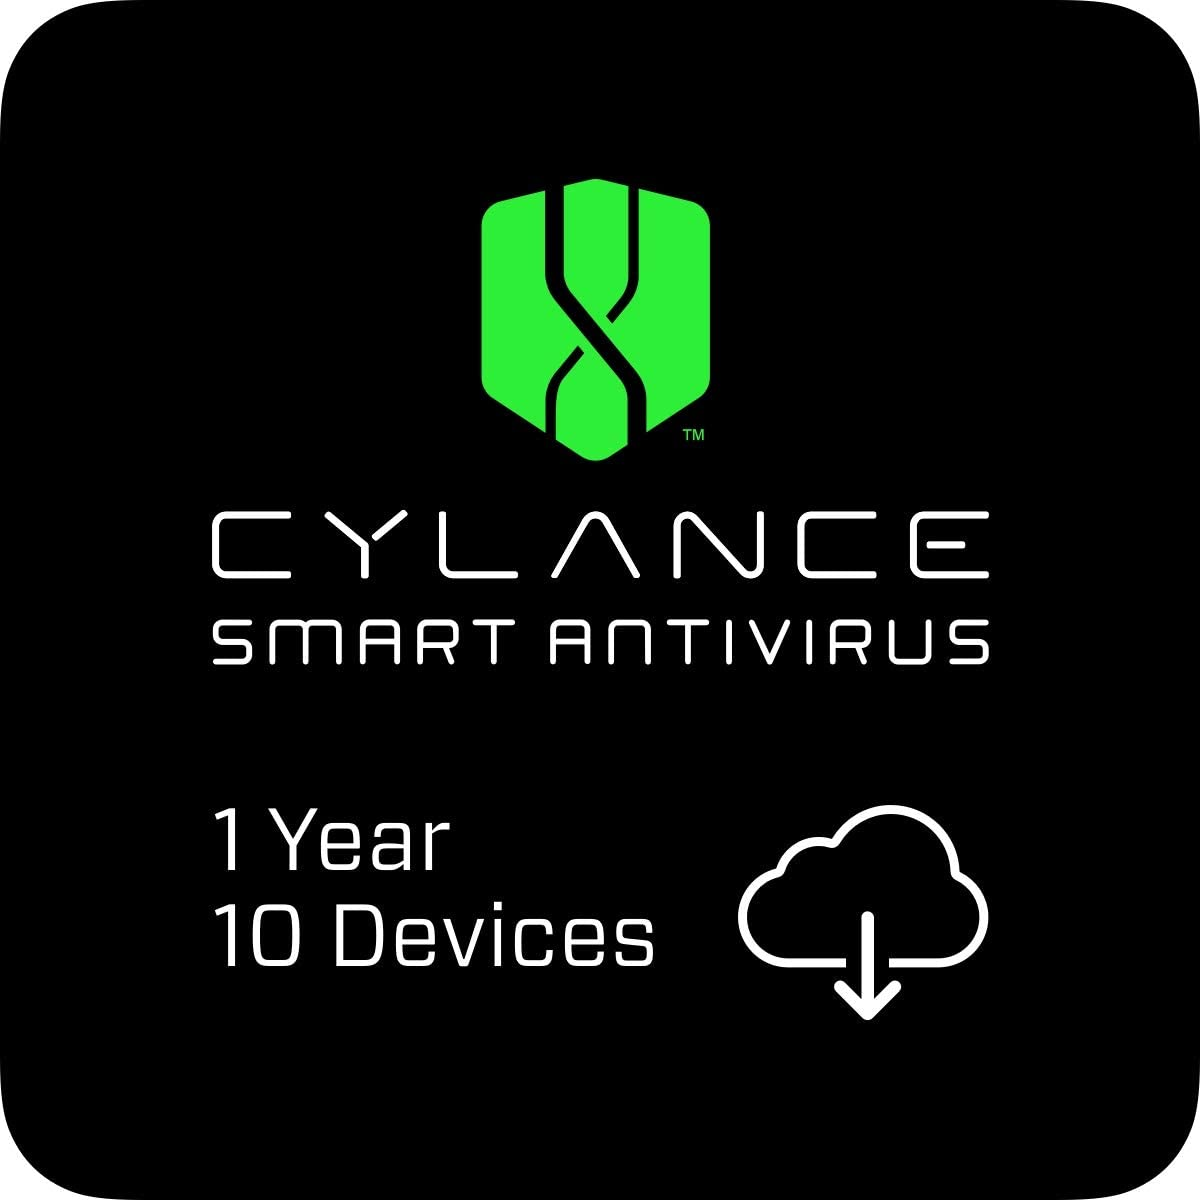 Cylance Smart Antivirus 1 Year 10 Online Large discharge sale PC Cod 70% OFF Outlet Devices Mac